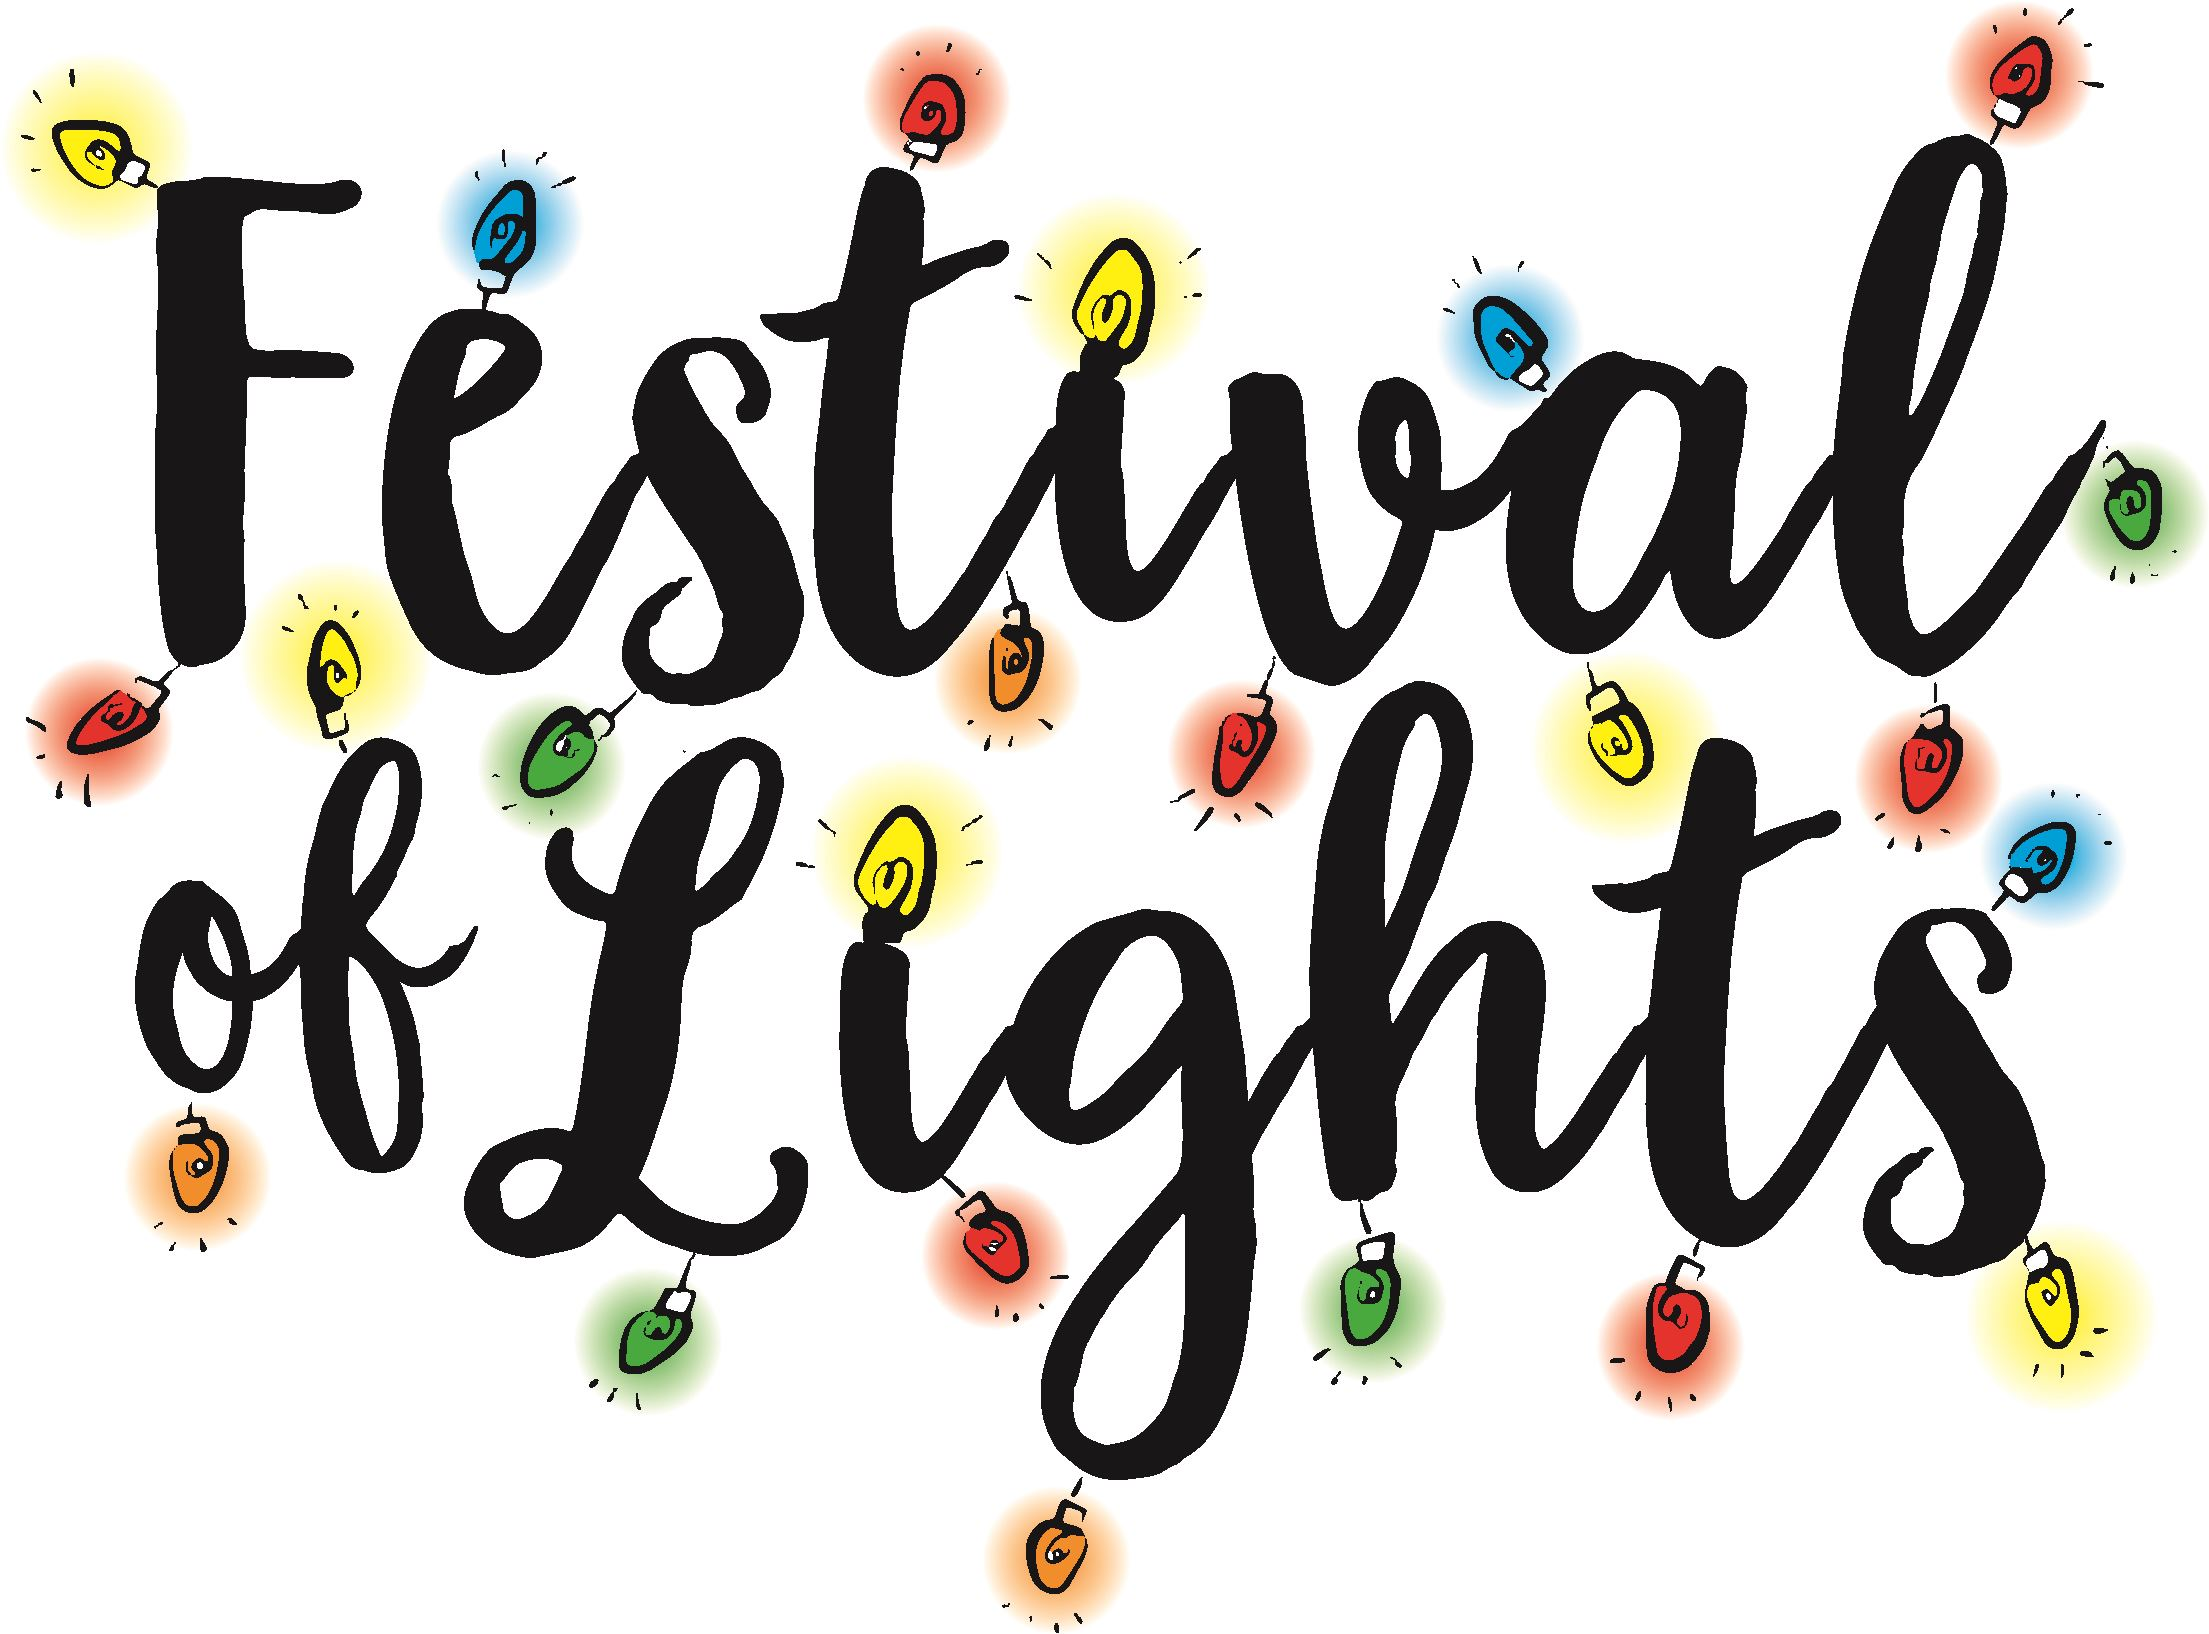 logo for the Festival of Lights written in cursive with drawn colorful lights decorating the words.